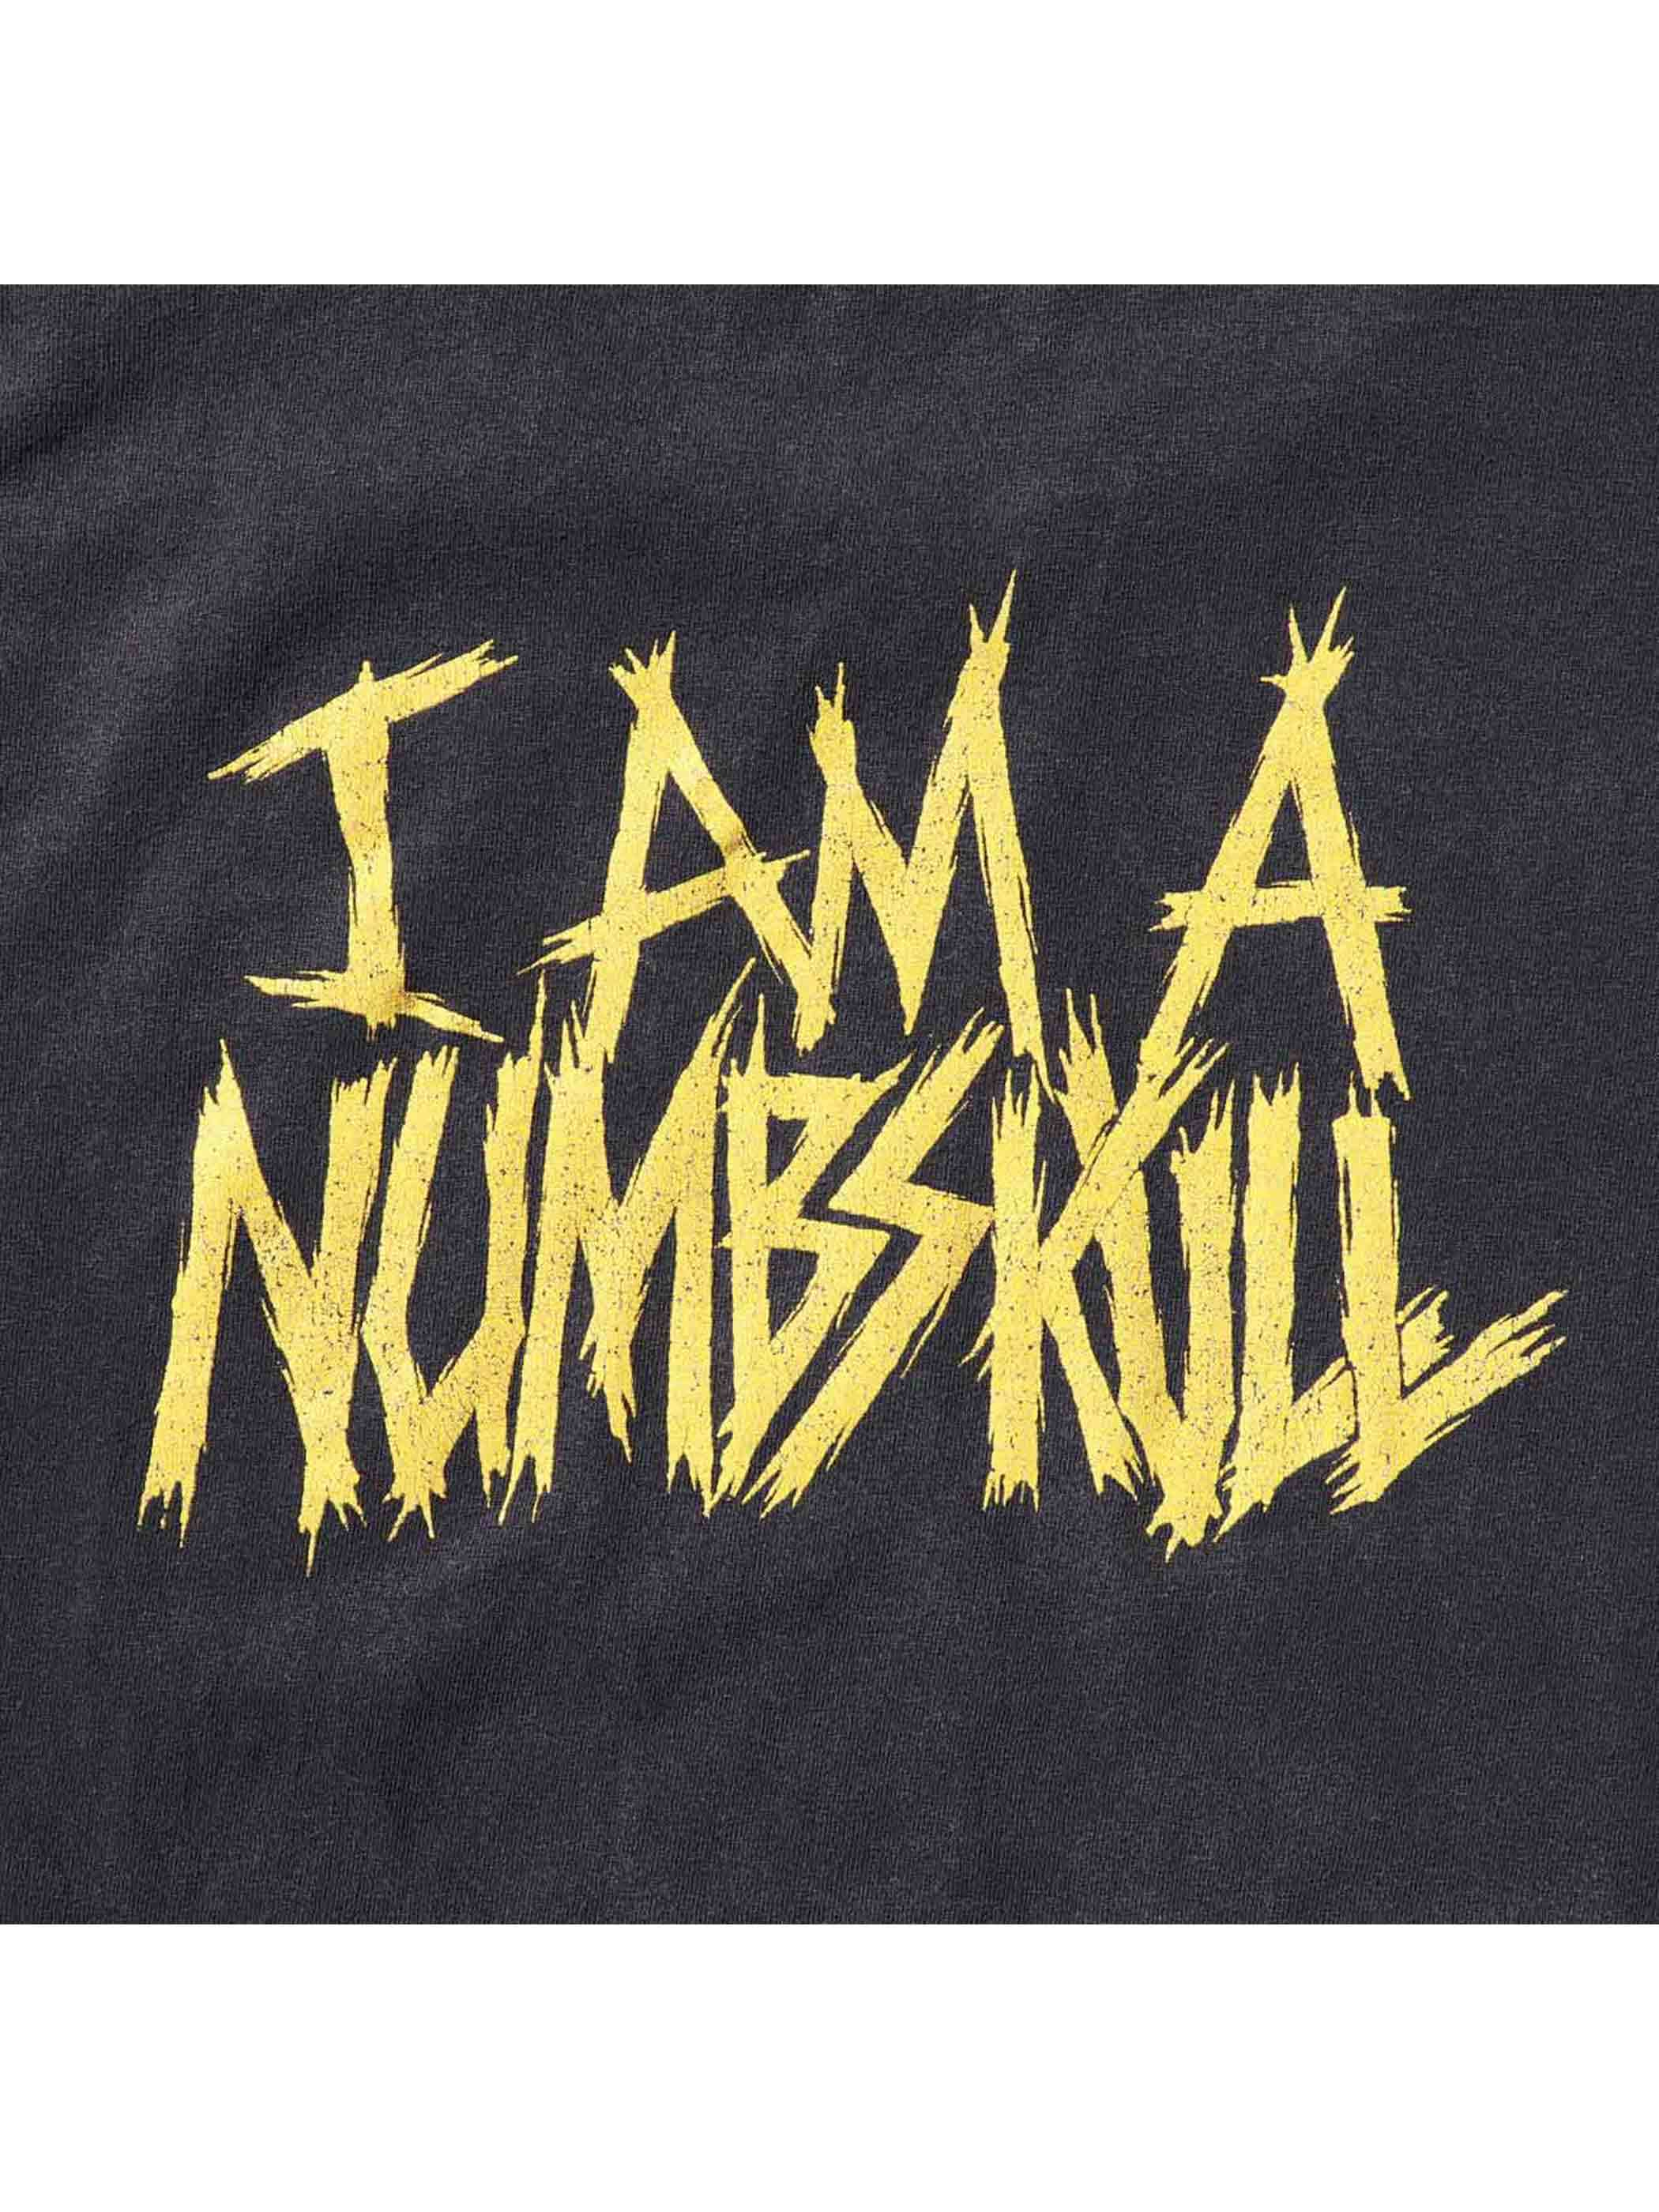 "00's GHOUL ""MANIAXE / I AM A NUMBSKULL"" プリントTシャツ [About XL]"